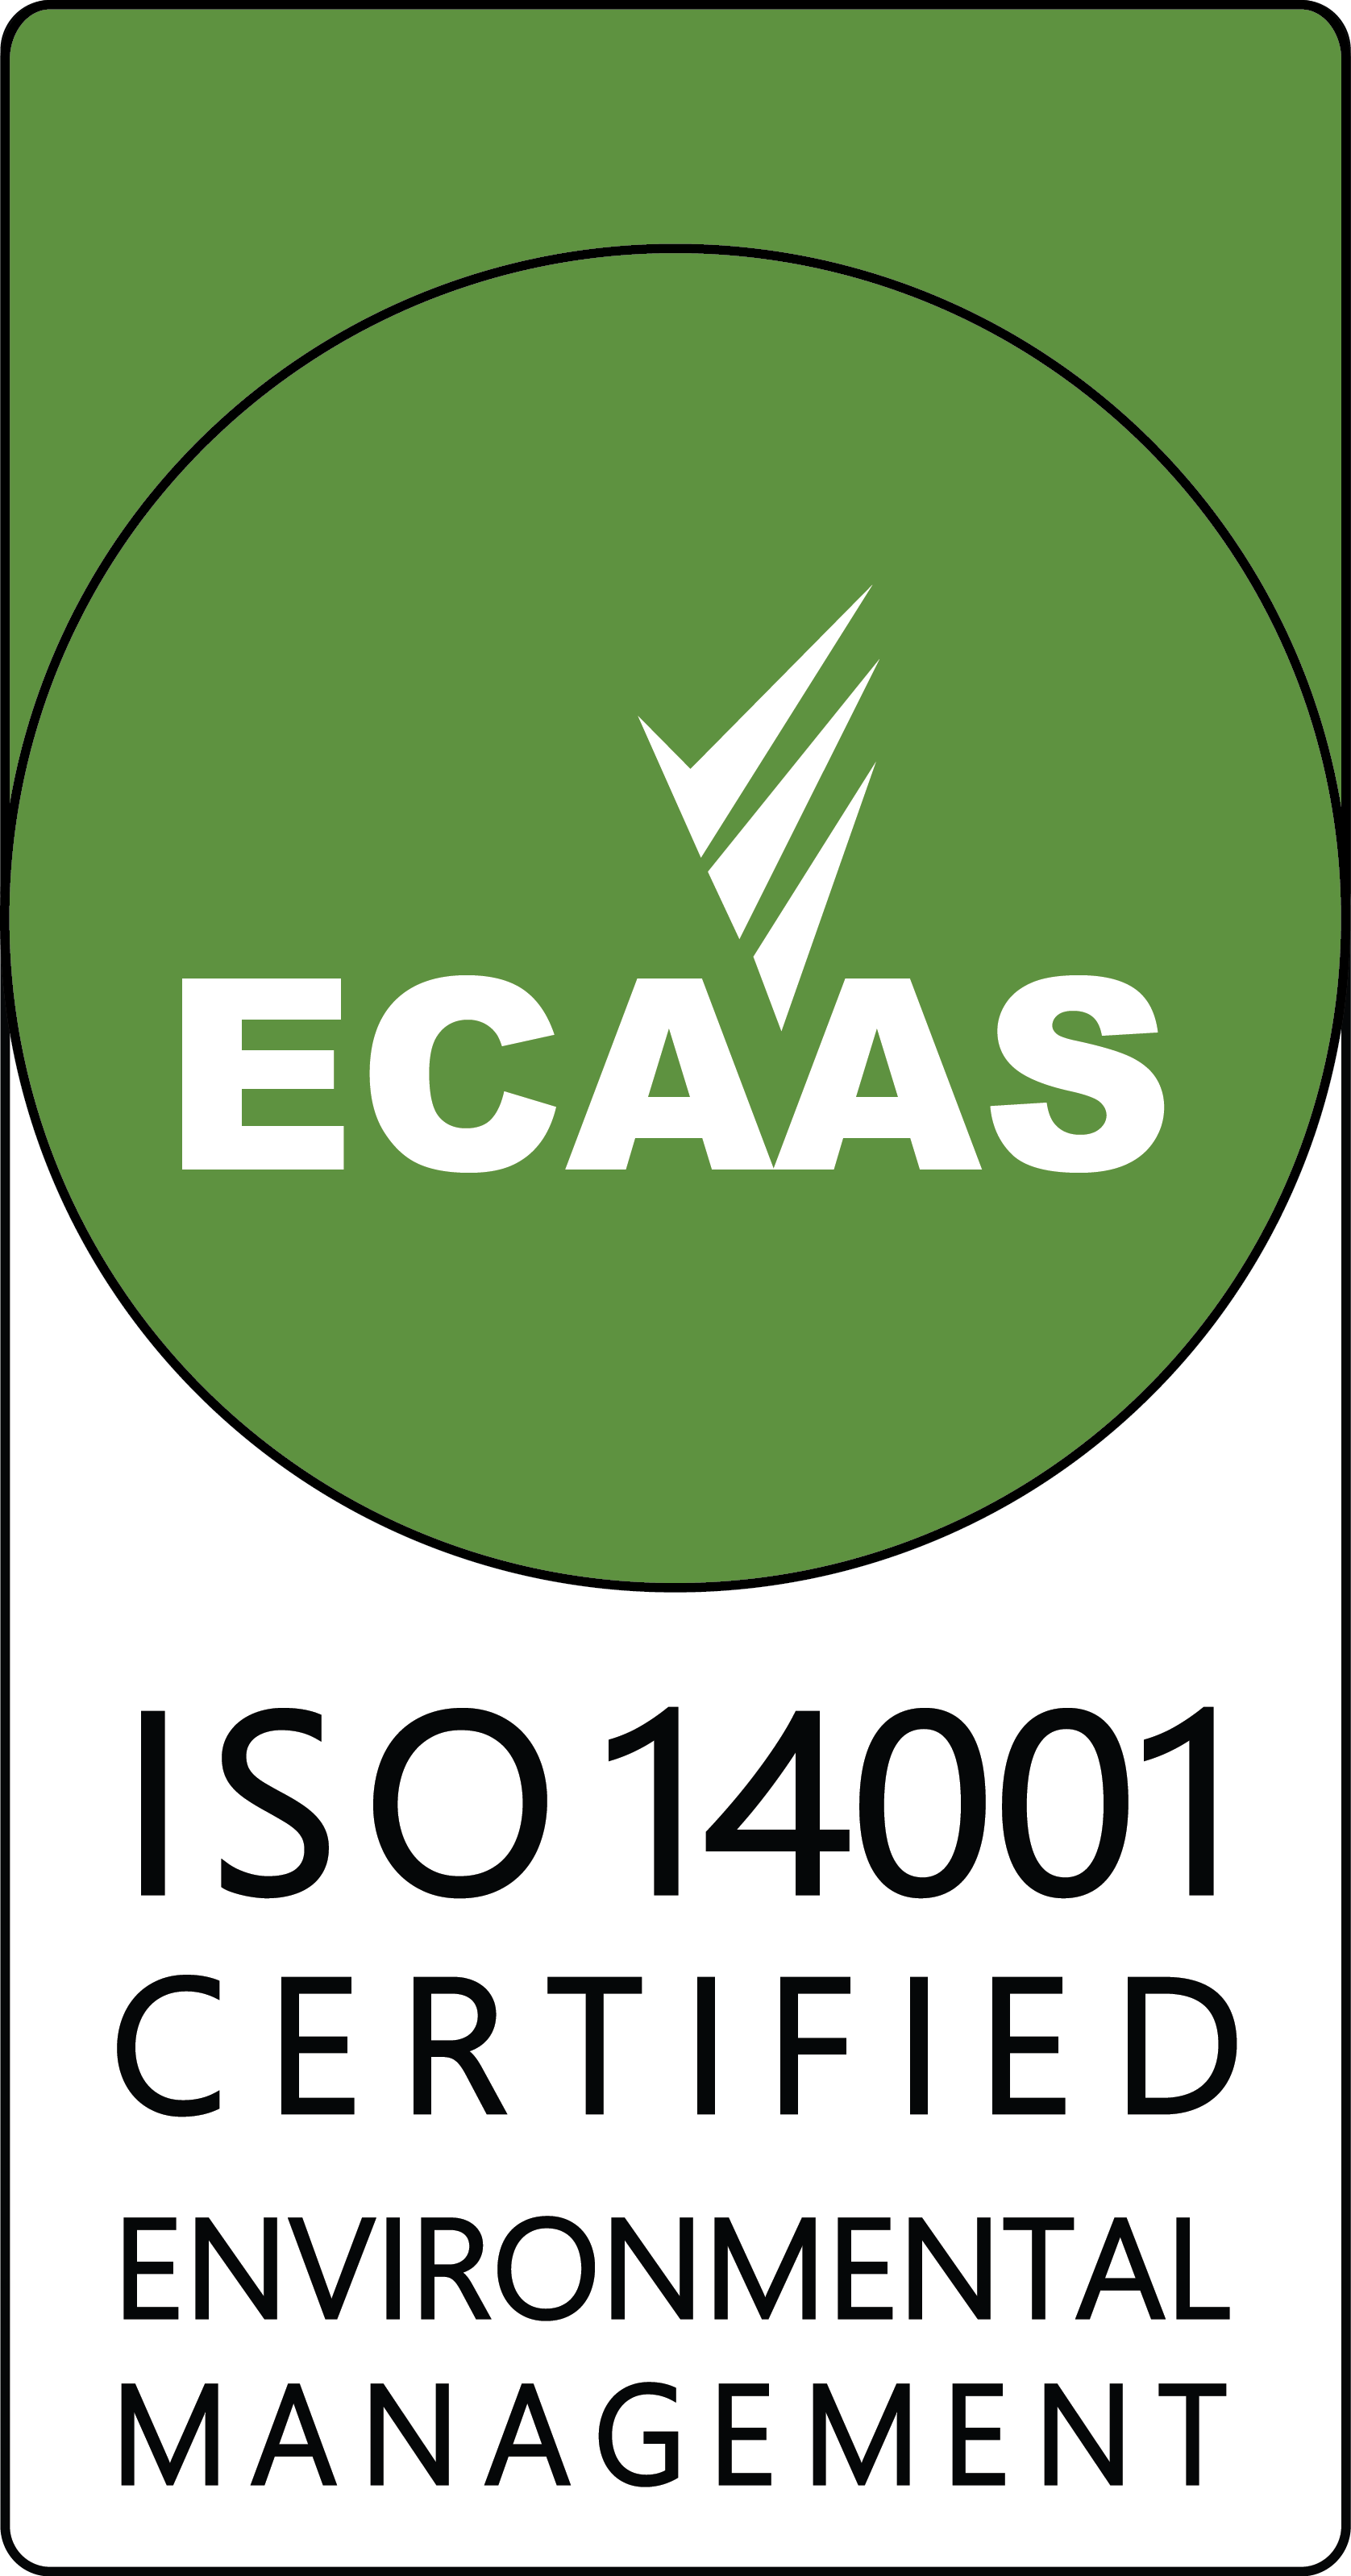 ECAAS Certification Mark - 14001 v1.1 300ppi